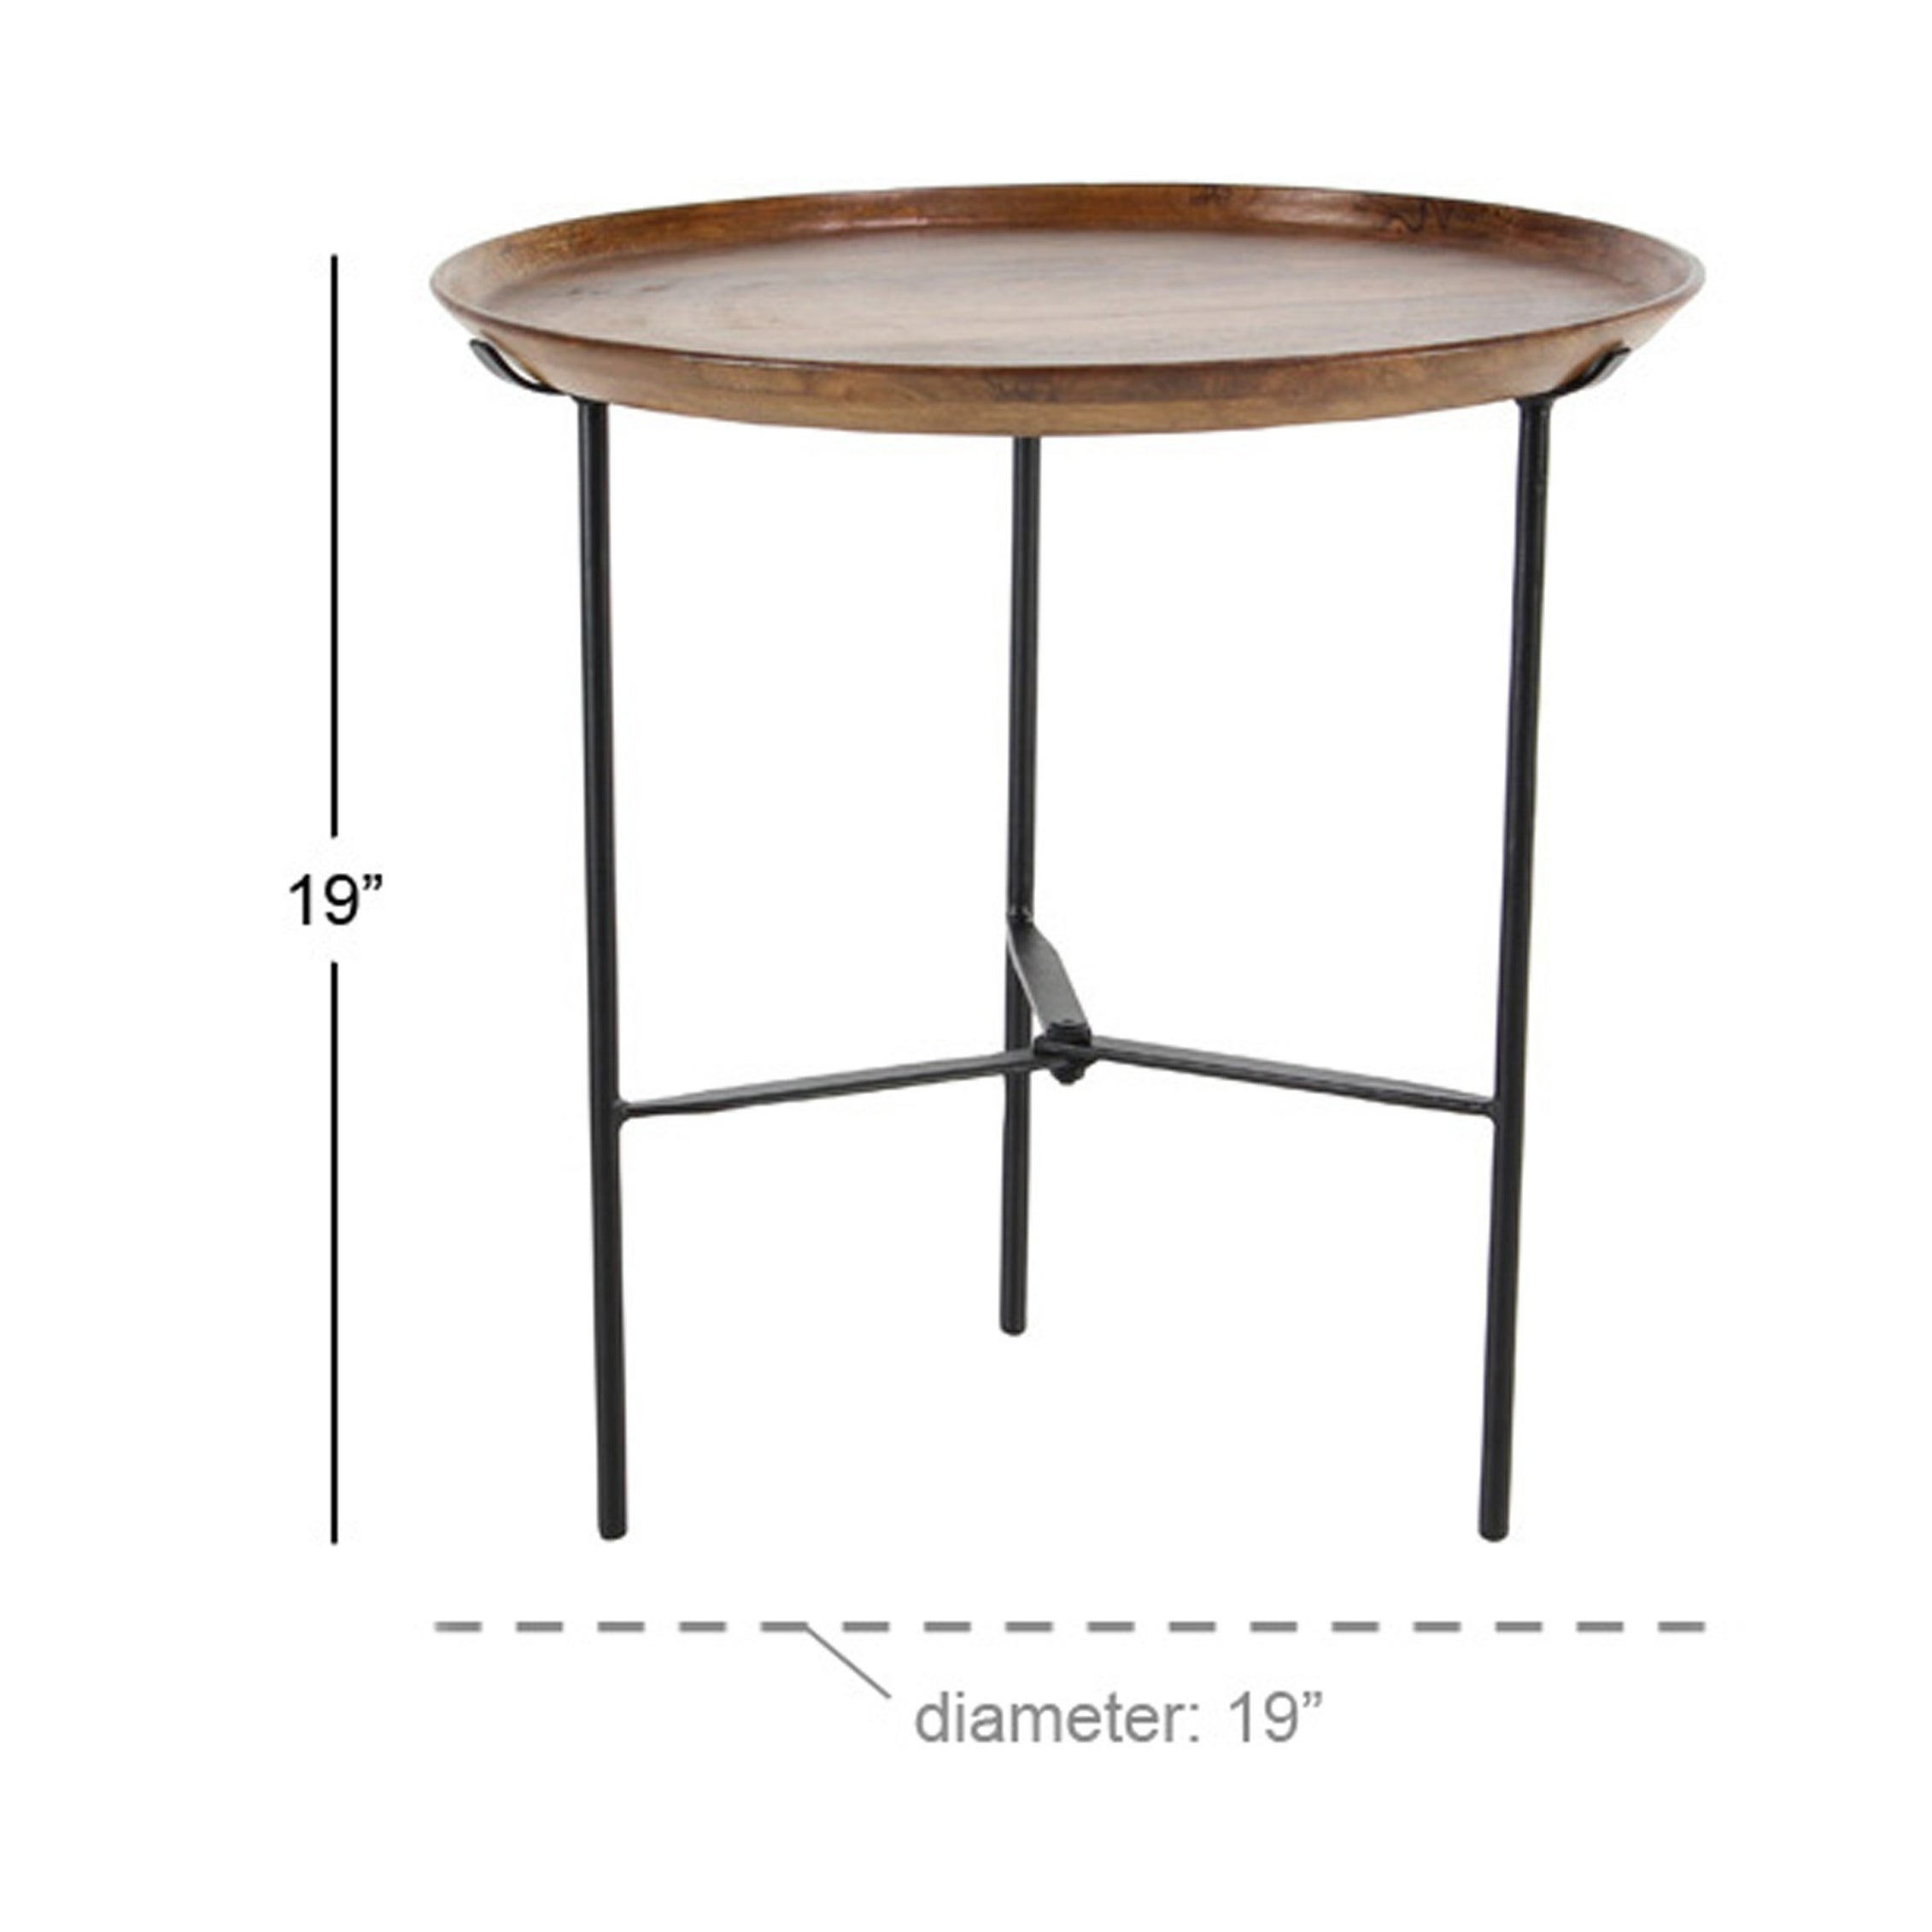 - Shop Rustic 19 X 19 Inch Round Wood And Iron Accent Table